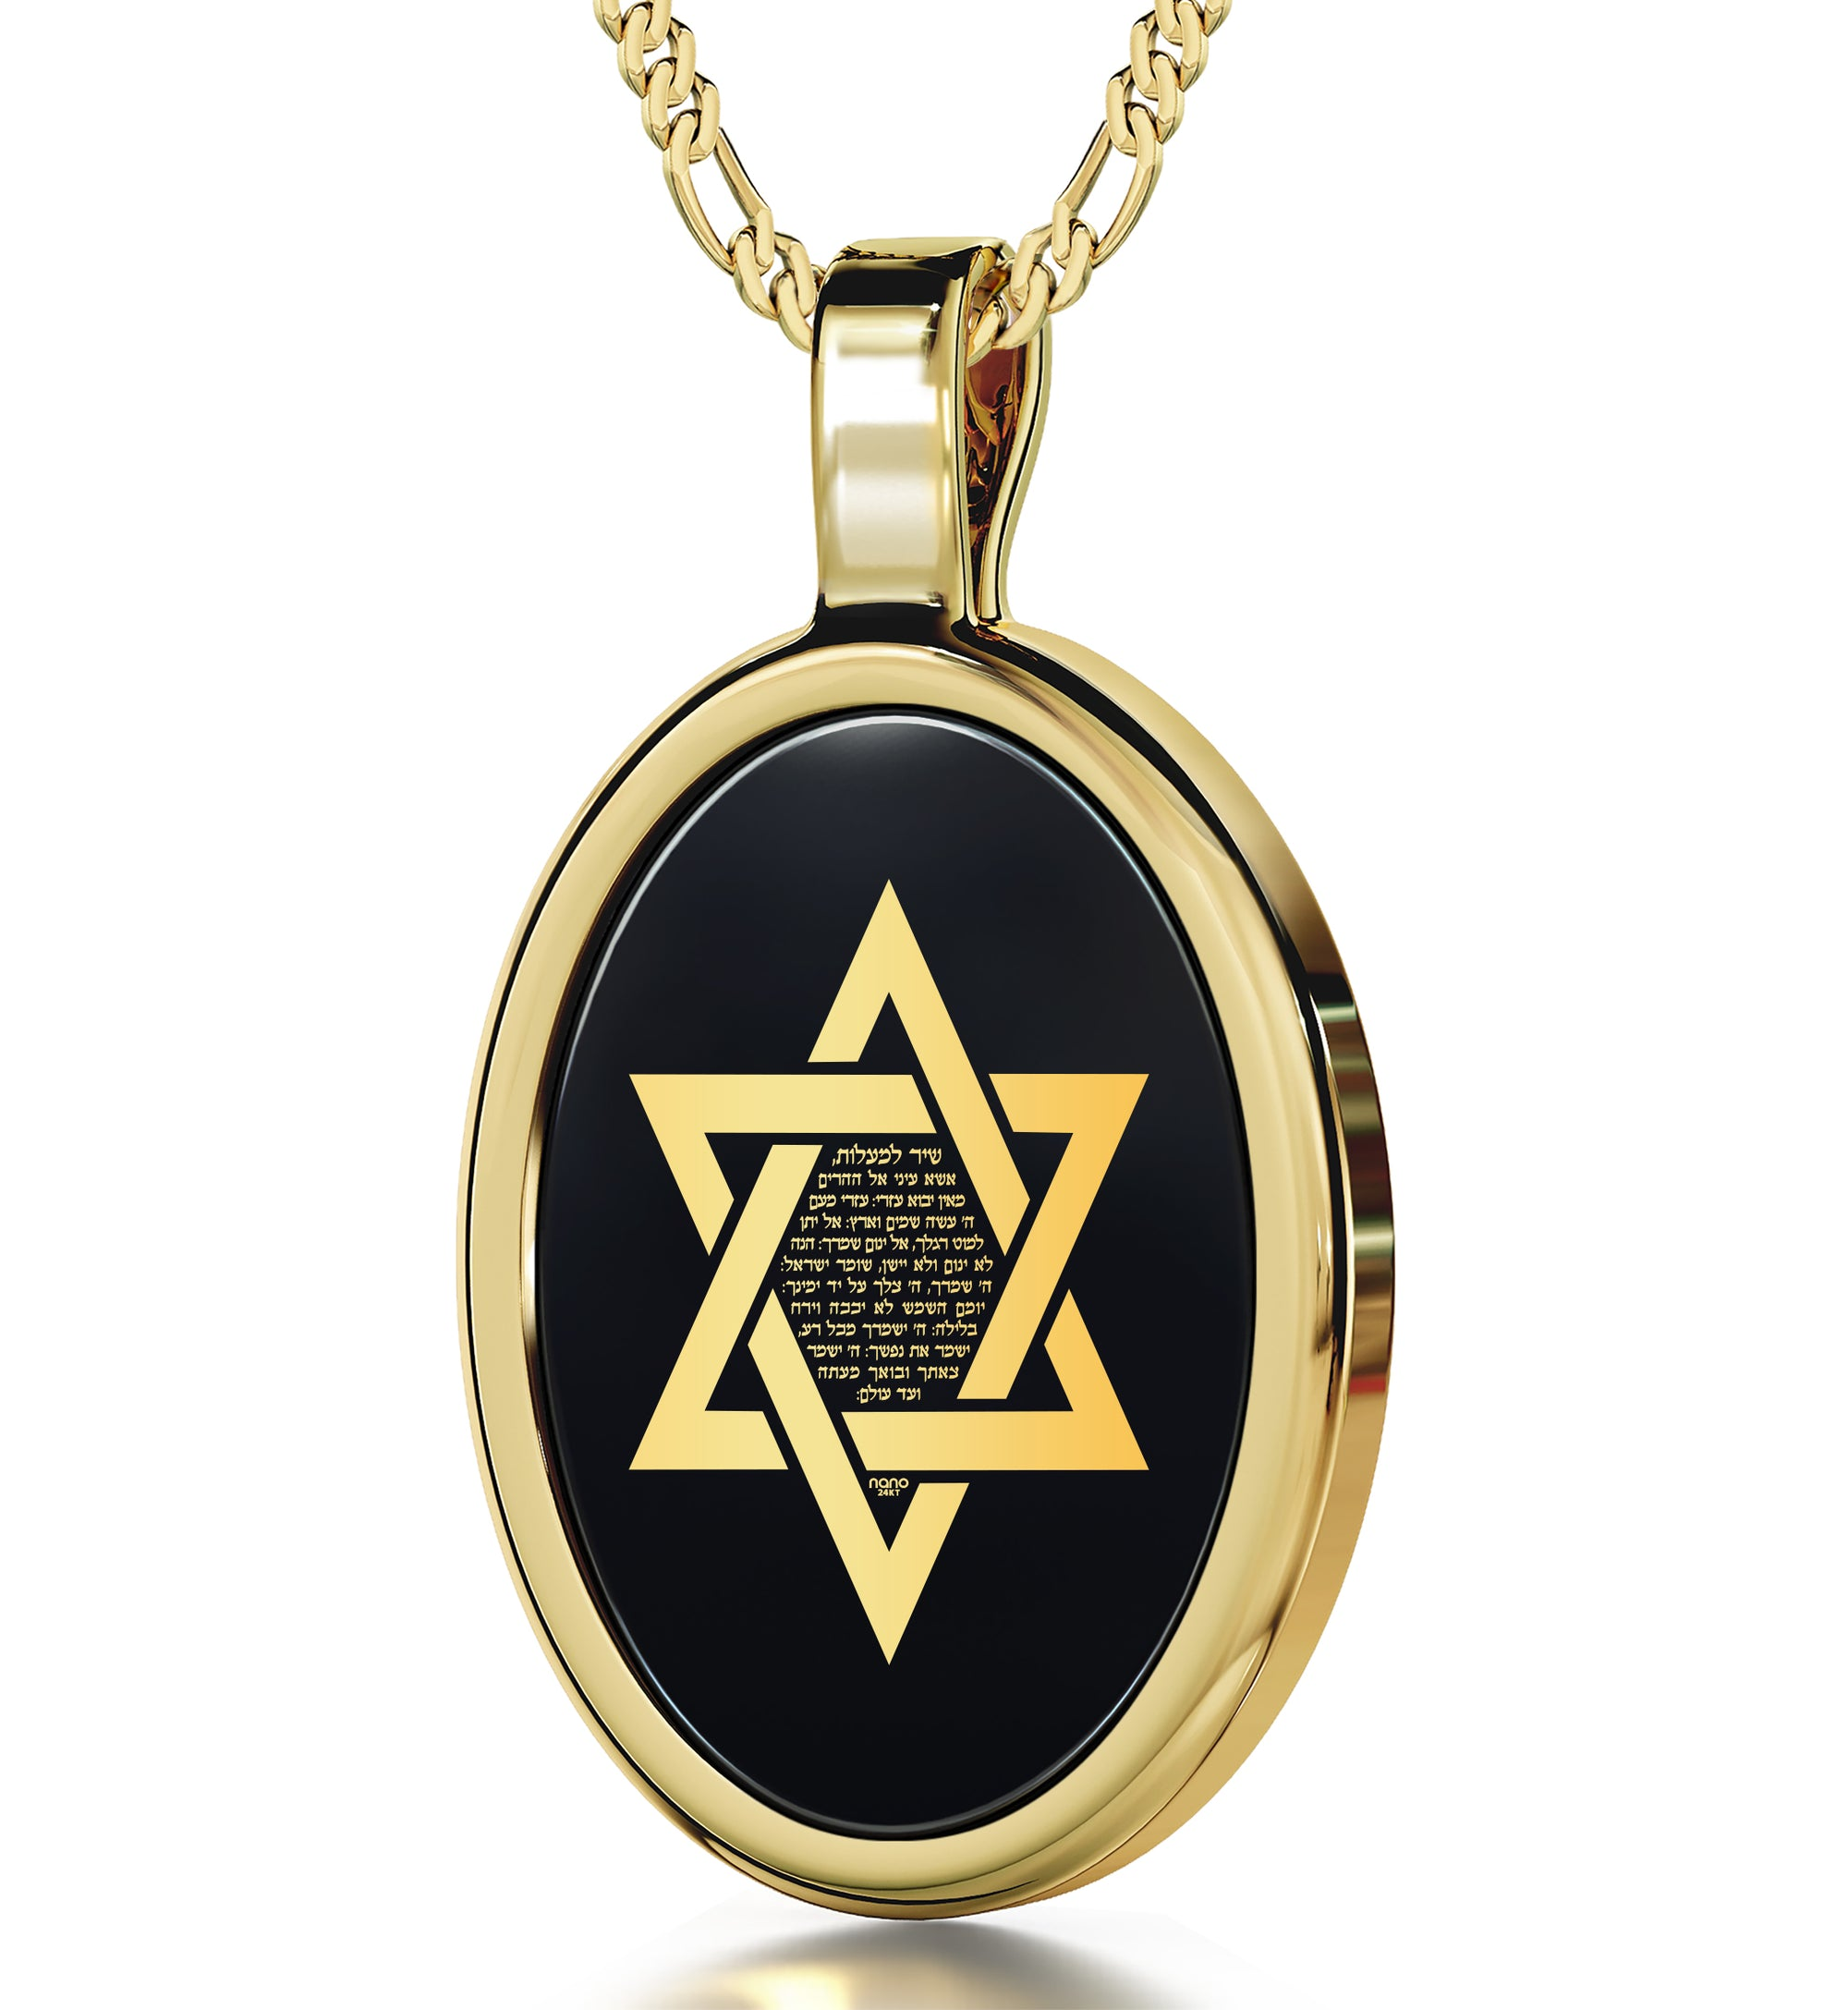 Star of David Necklace Shir Lama'alot Pendant 24k Gold Inscribed on Onyx - NanoStyle Jewelry